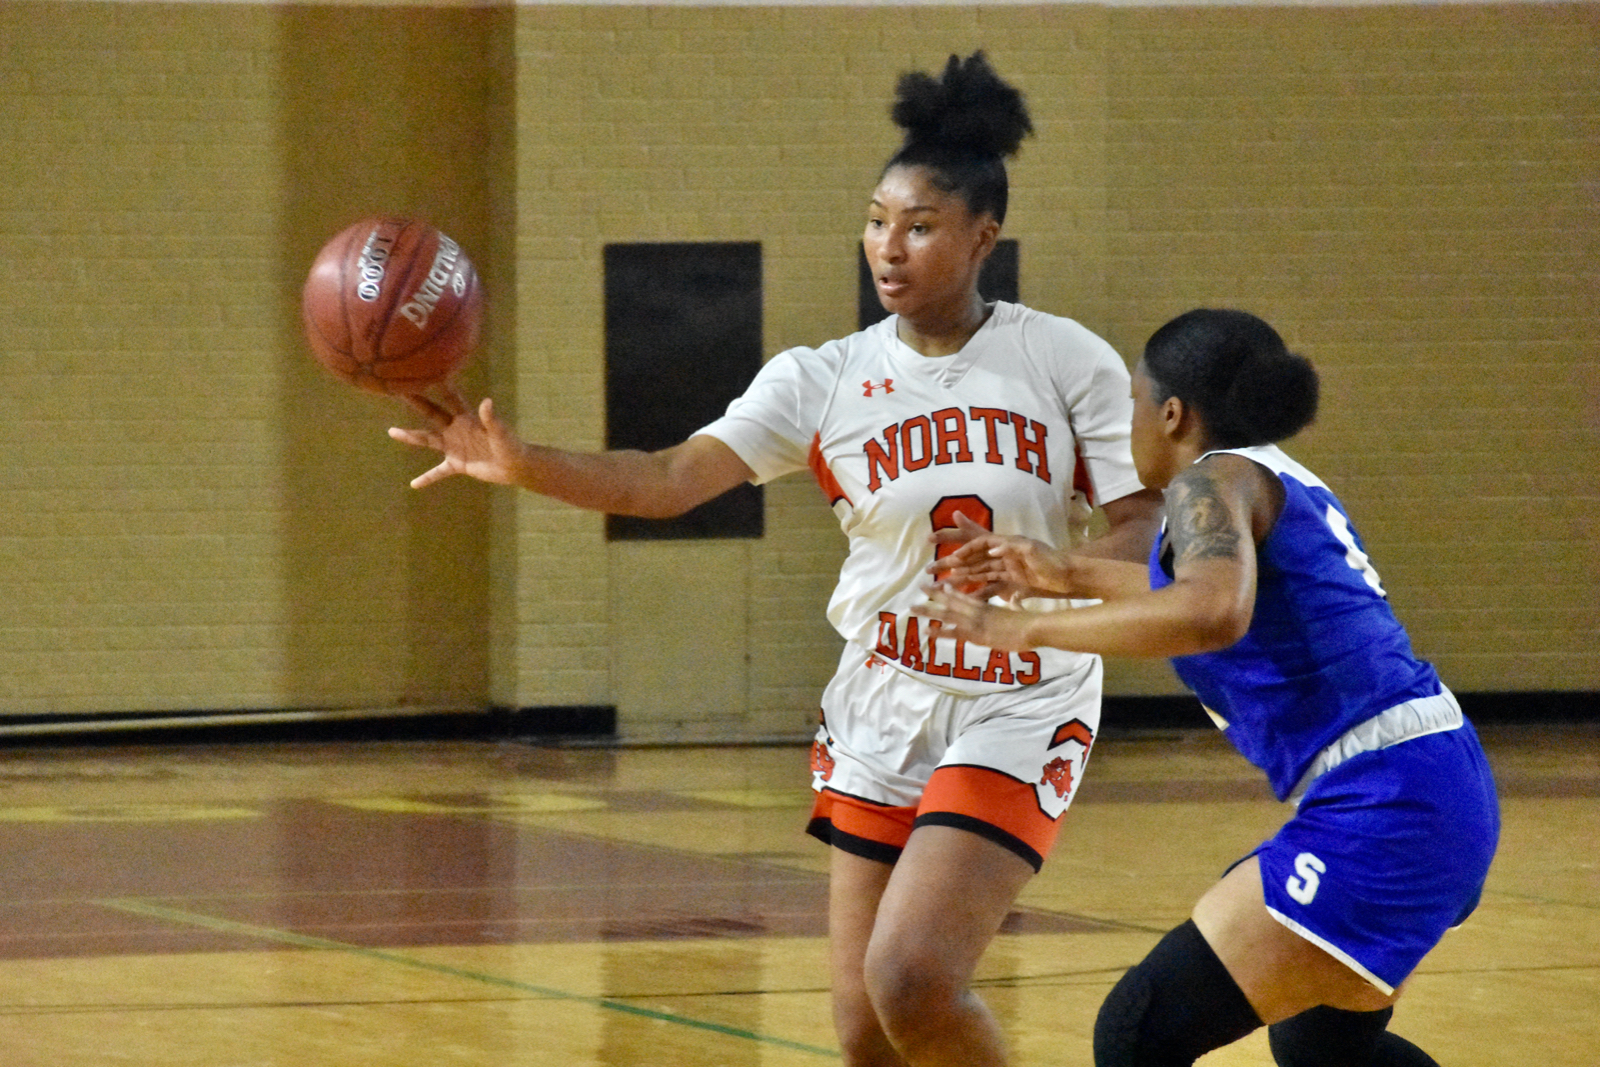 Young Lady Bulldogs' goal is to 'get better every day, learn to compete, and learn to win'